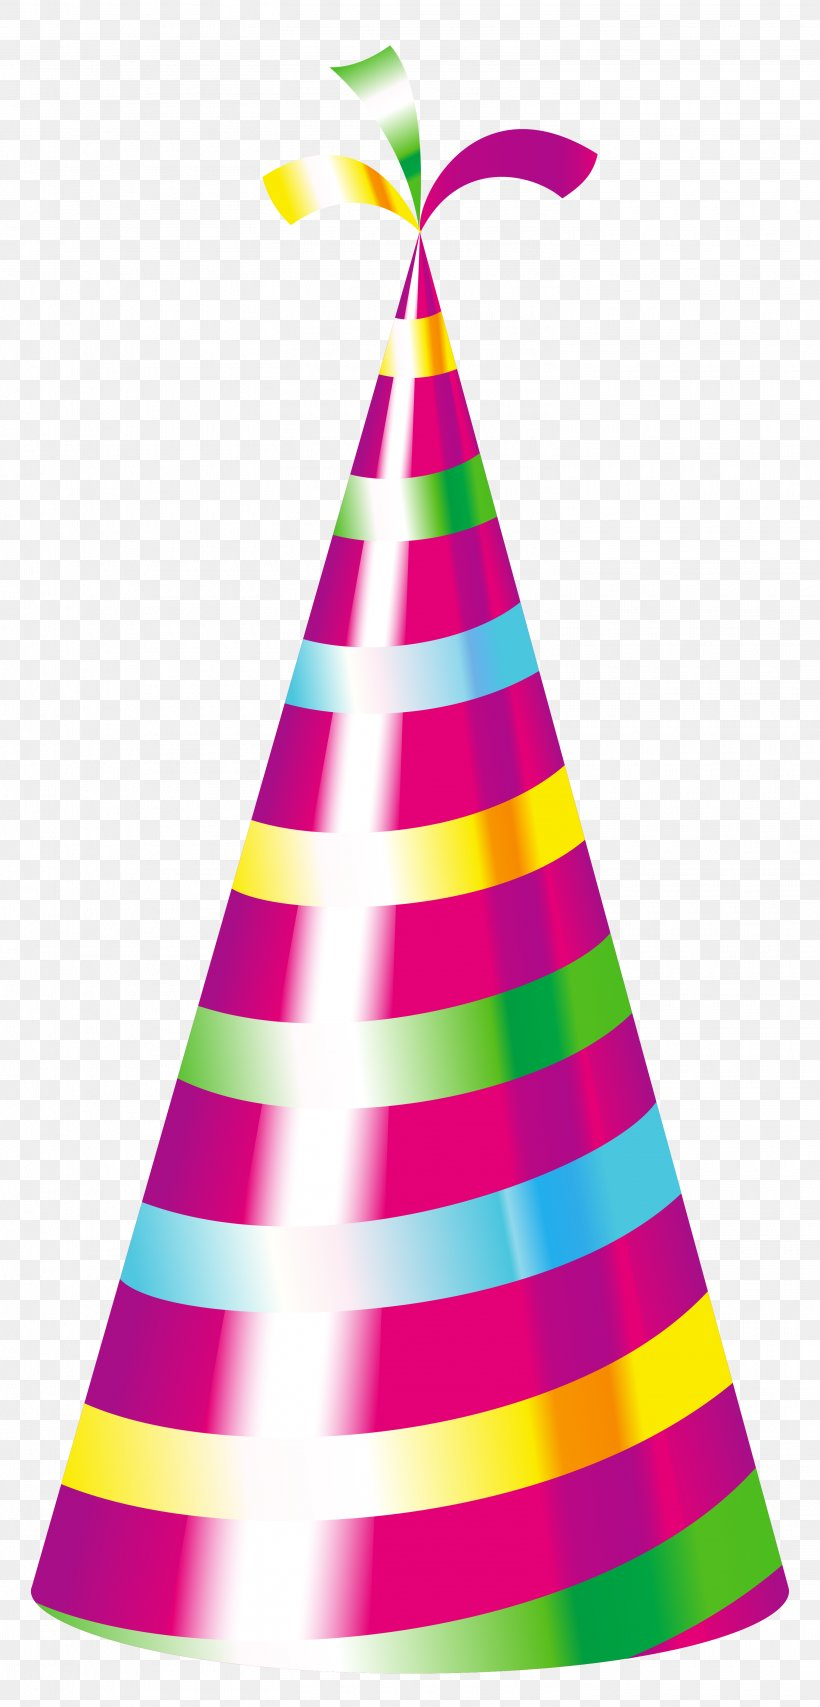 Birthday Party Hat Clip Art, PNG, 3015x6279px, Birthday Cake, Birthday, Christmas Tree, Cone, Confetti Download Free